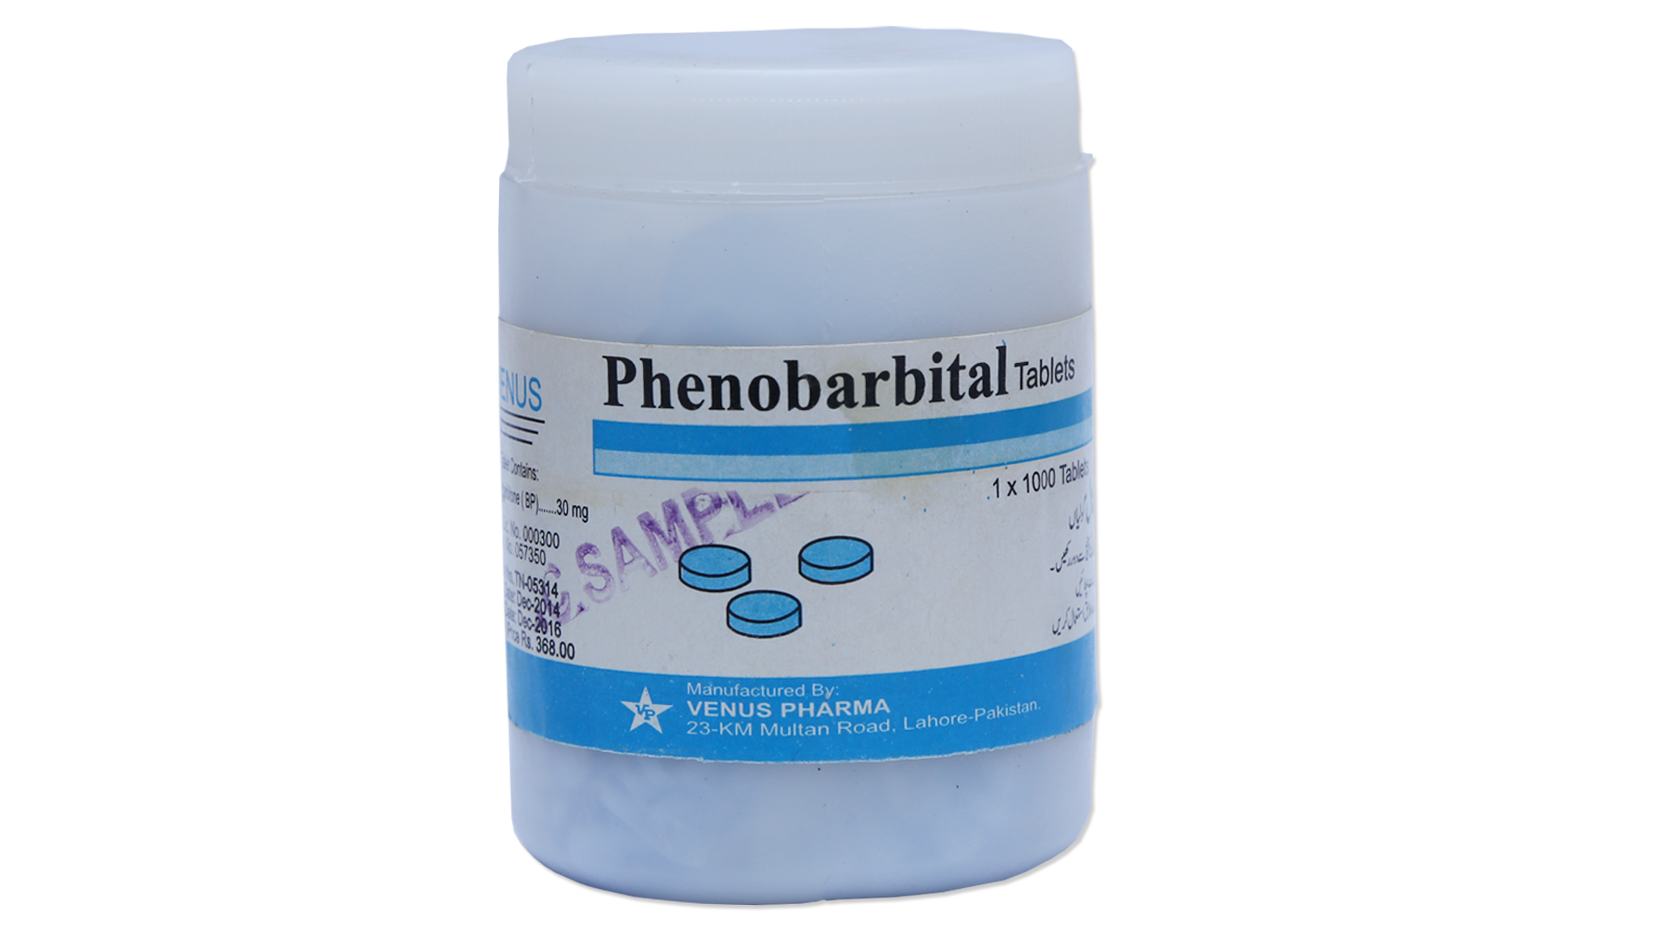 And what kind of medicine is phenobarbital How much does it harm the body